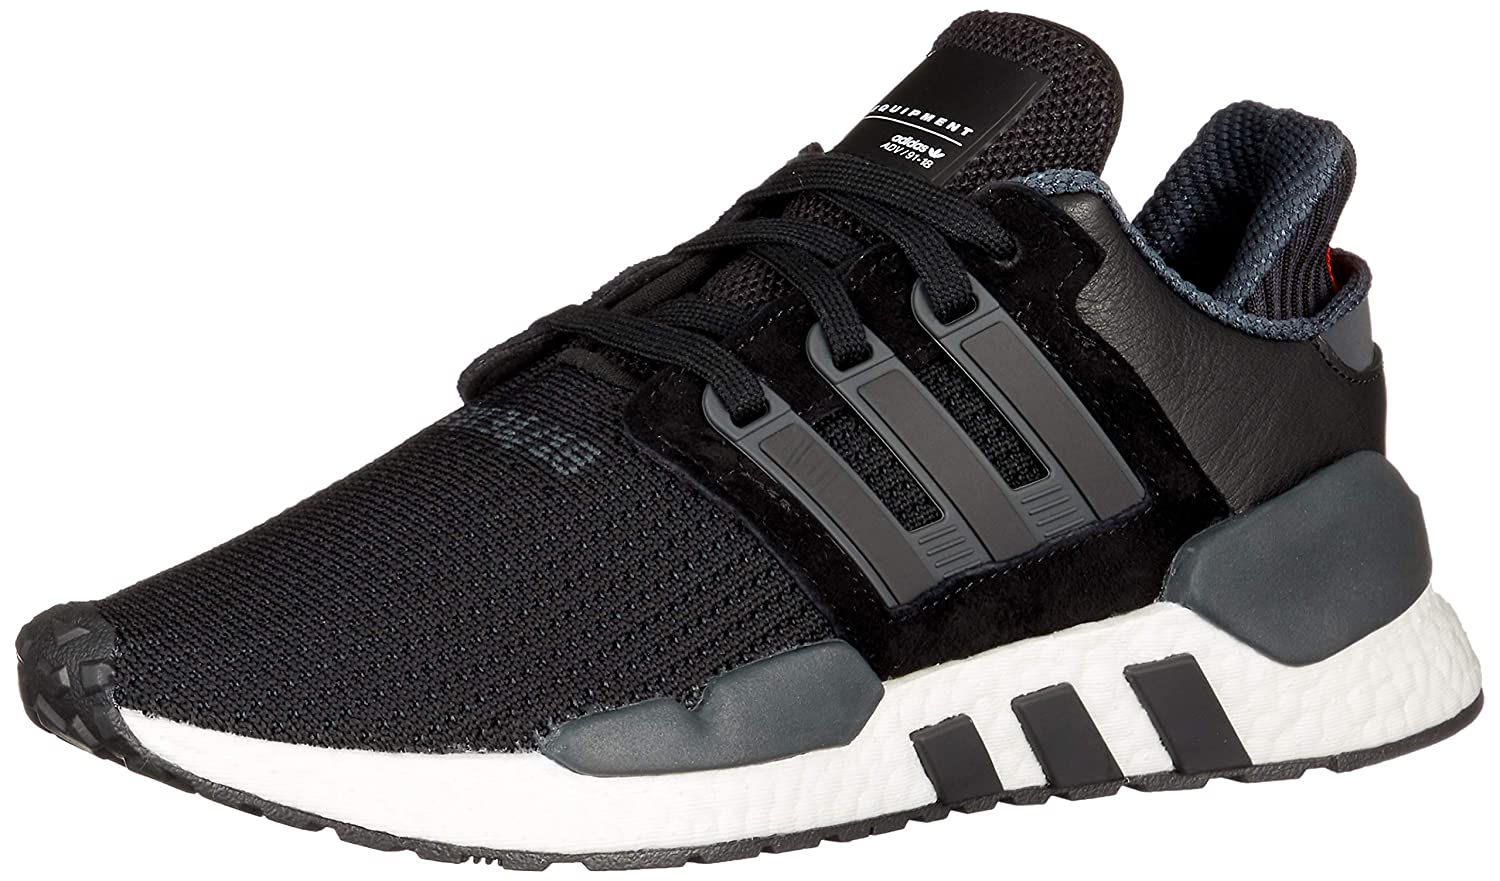 Support Footwear Adidas Eqt Originals 9118Core Black 9WeEIDYH2b